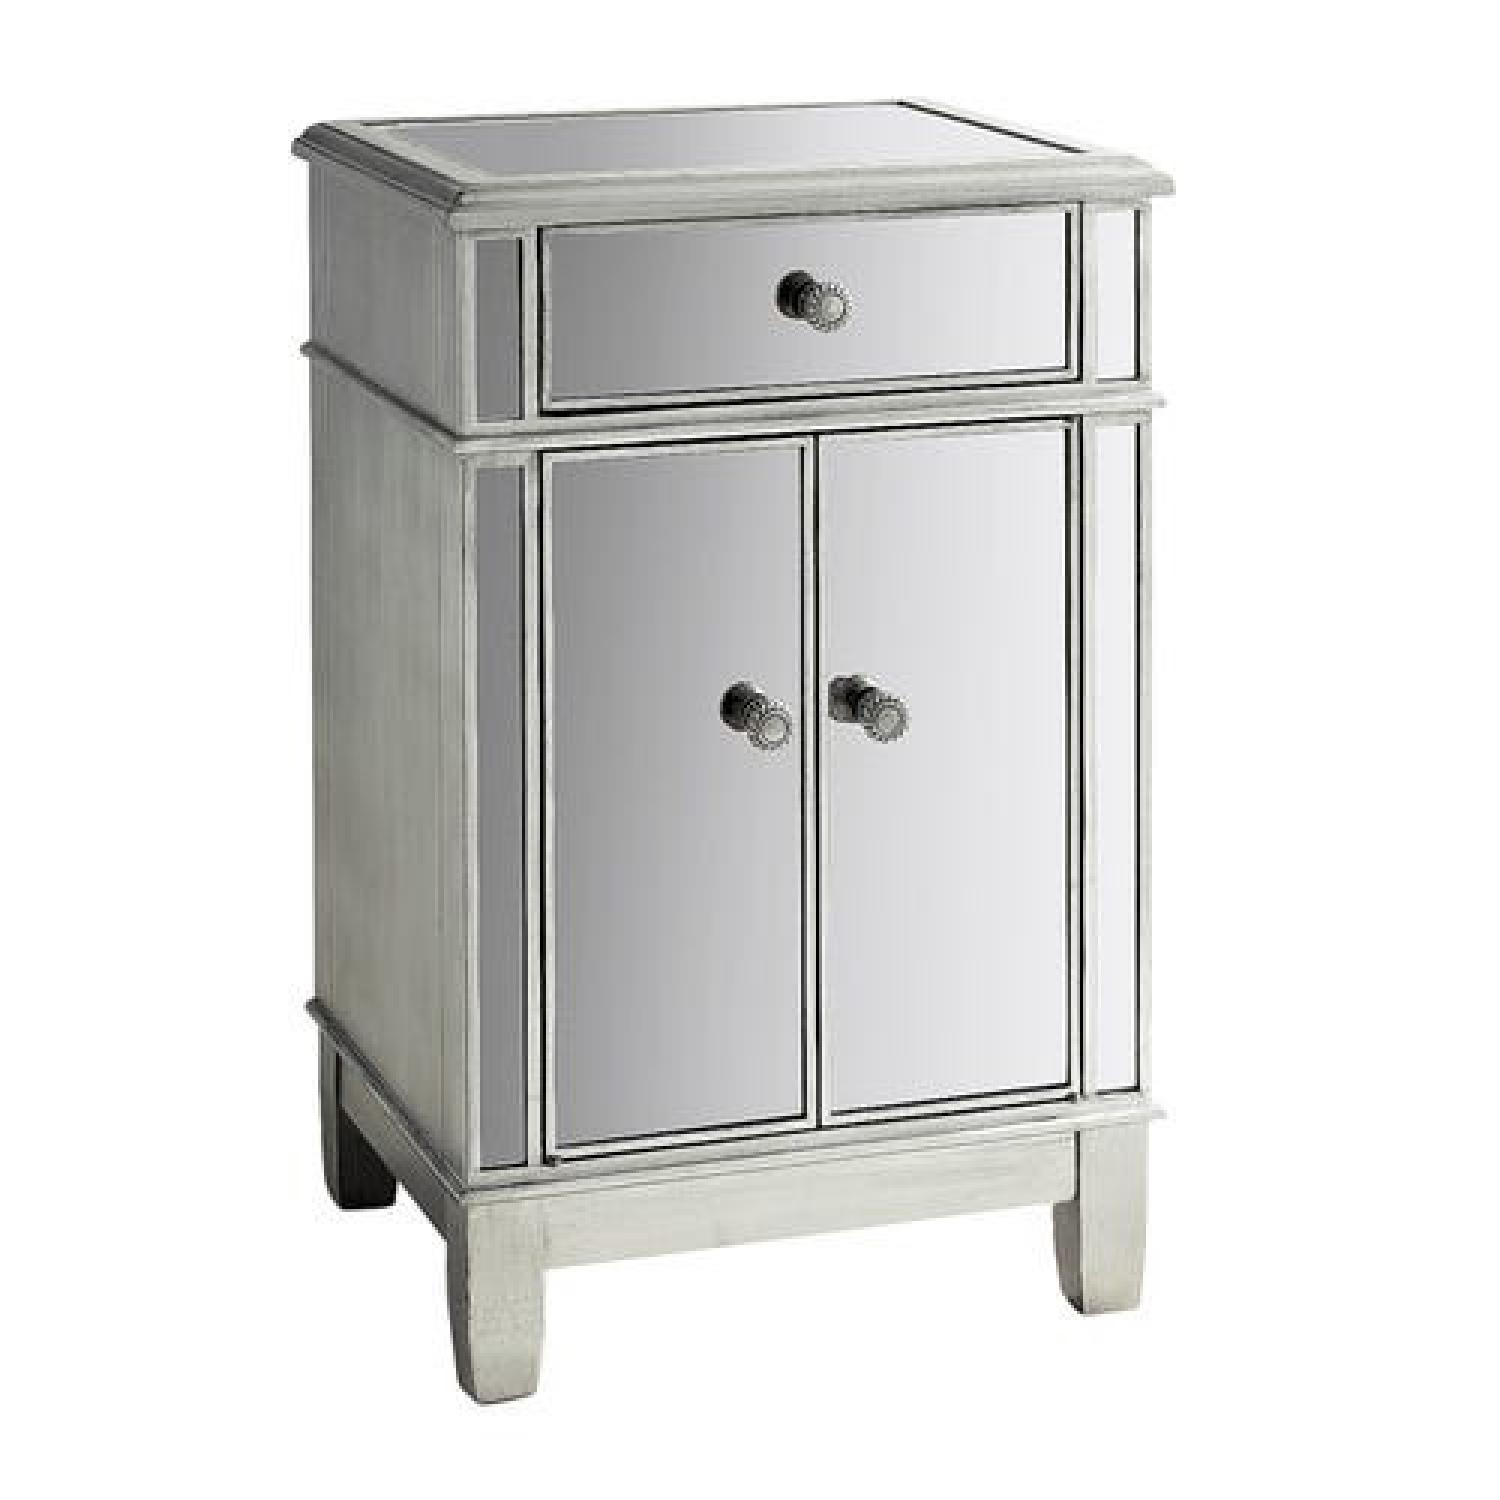 Pier 1 Imports Mirrored Silver Bedside Chest - image-0